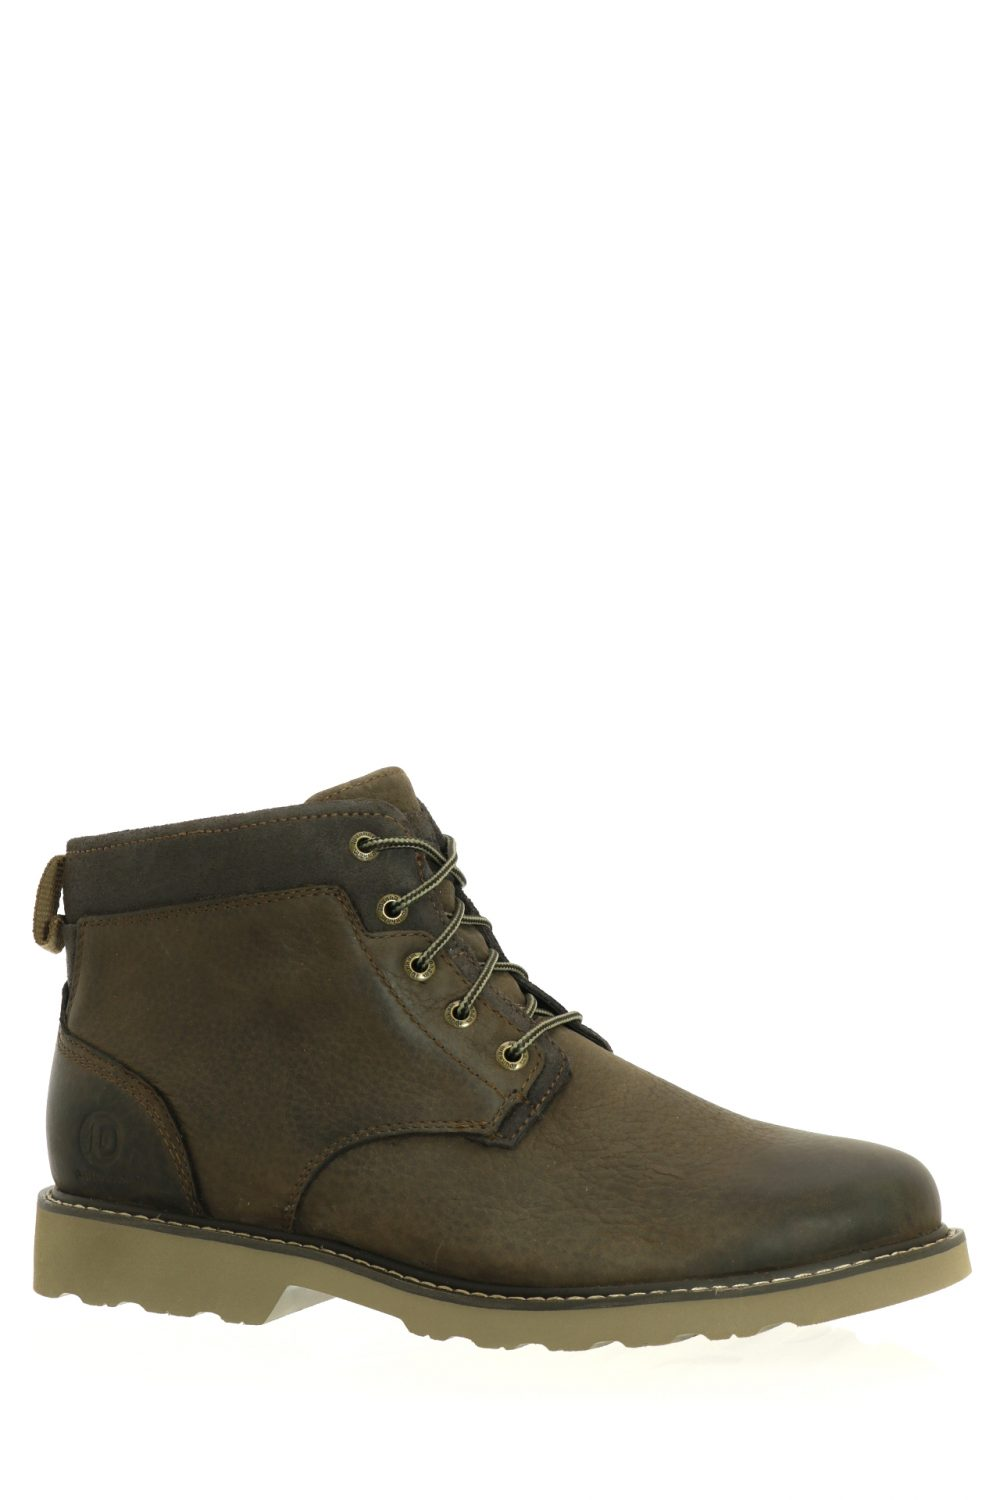 Dunham JAKE PT BOOT